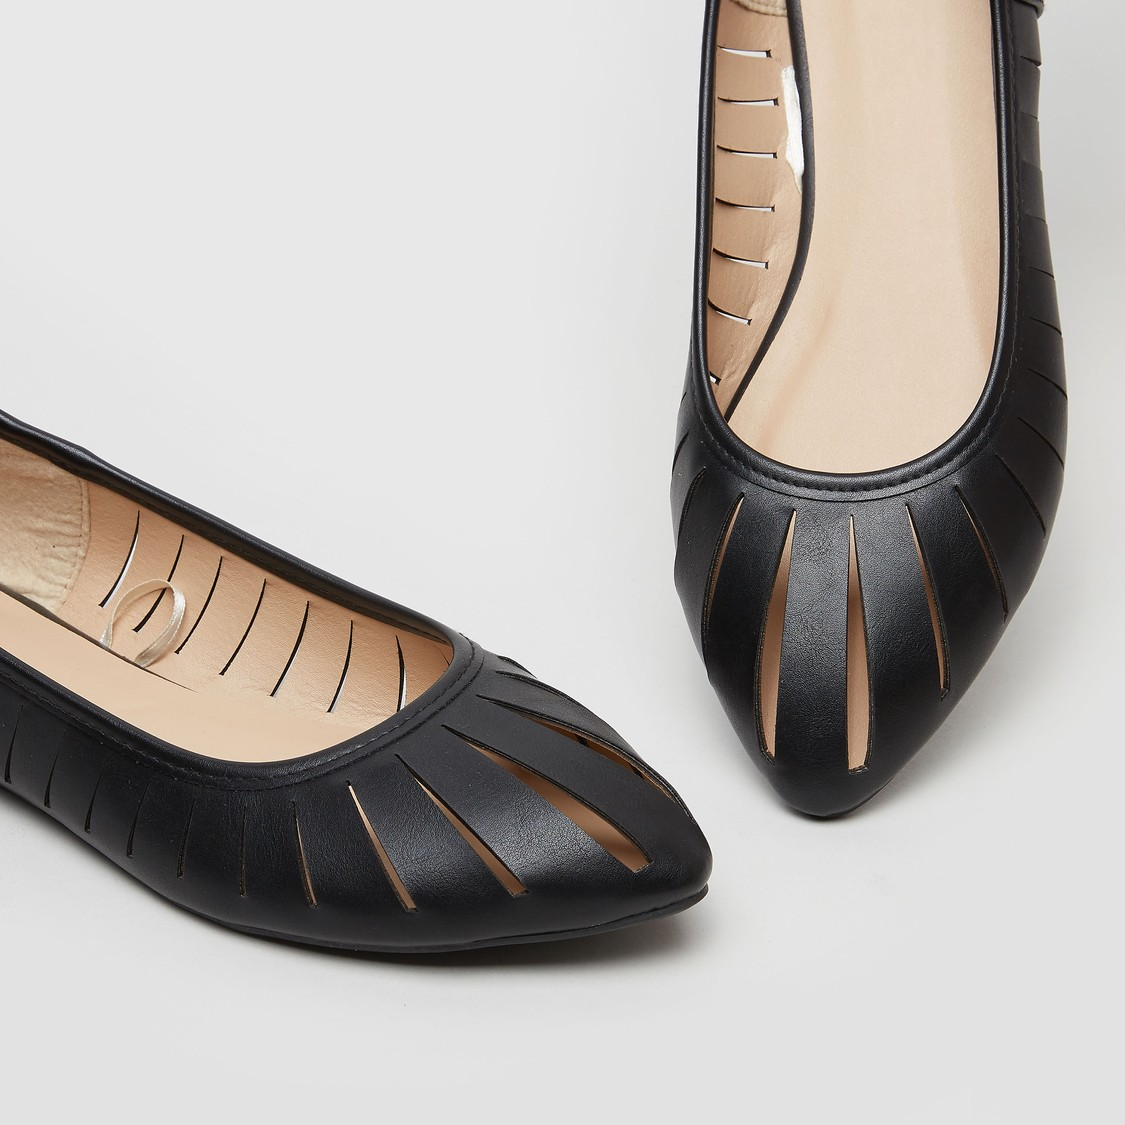 Solid Cut Out Detail Pointed Toe Ballerinas